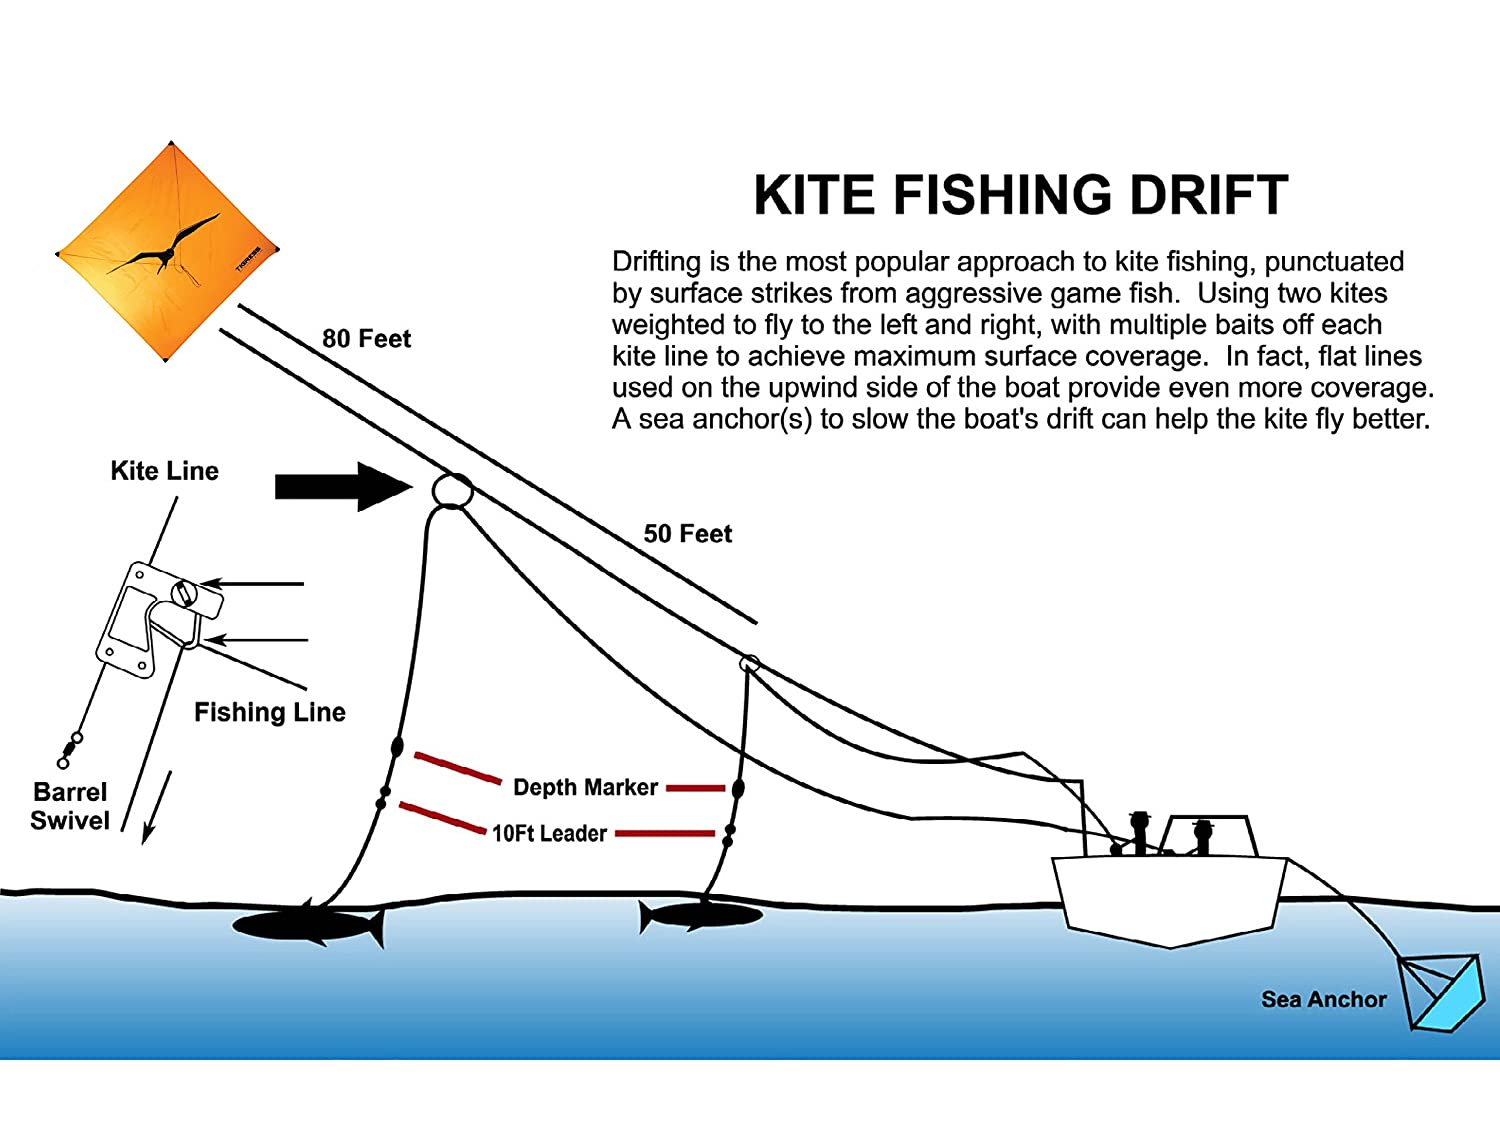 Tigress 88613 Kite Line Ii Fishing Equipment Assembly For Big Game Diagram Such As Shark